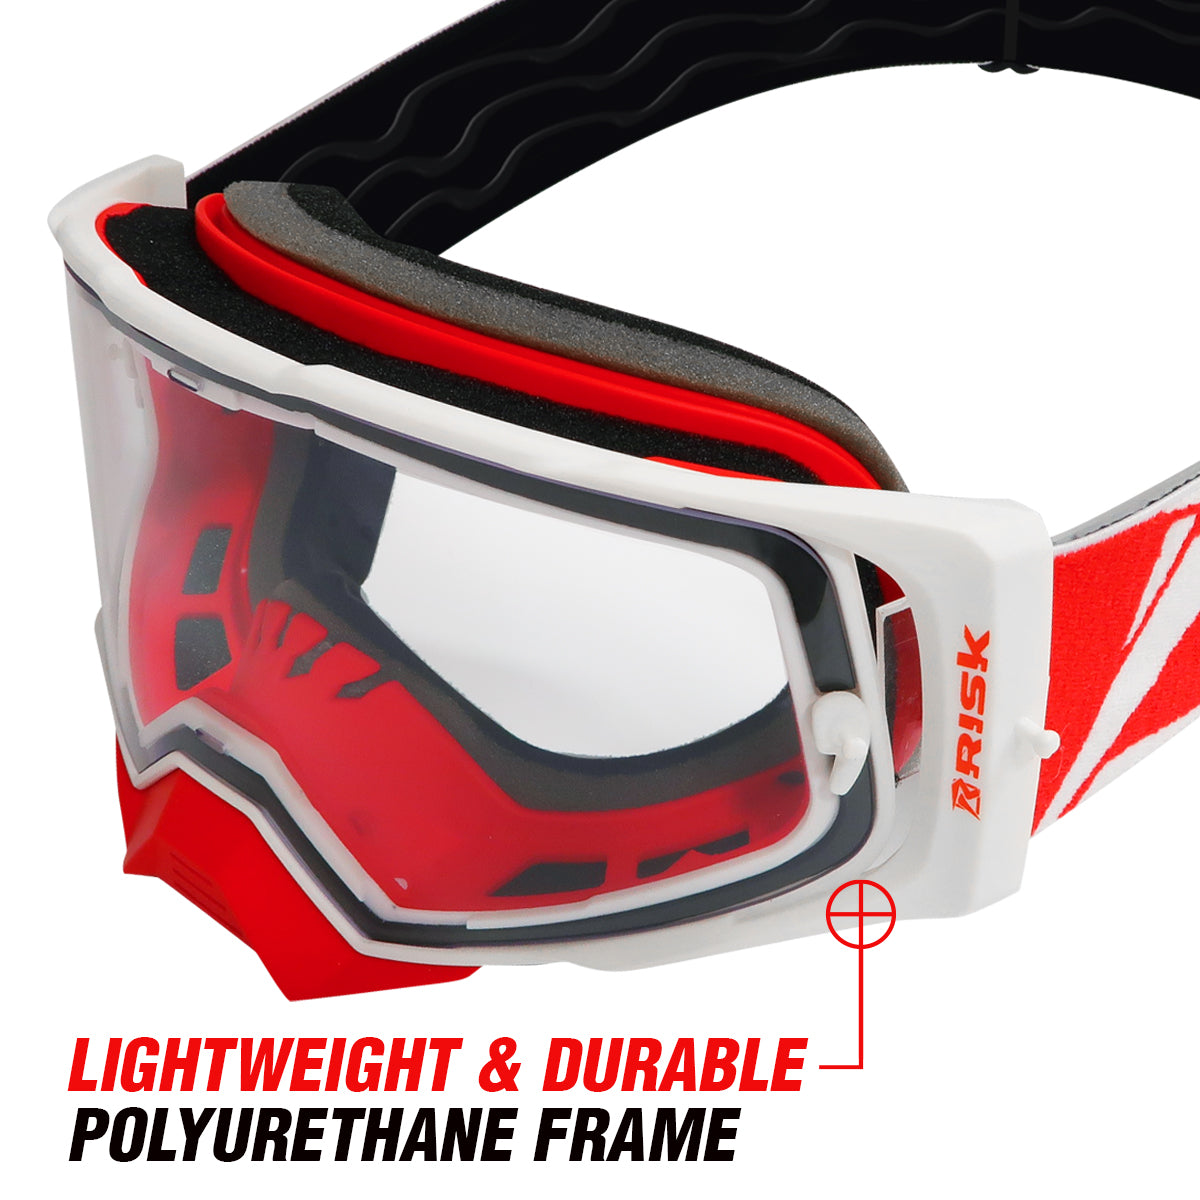 J.A.C. V2 MX Goggles durable frame and outriggers for comfort